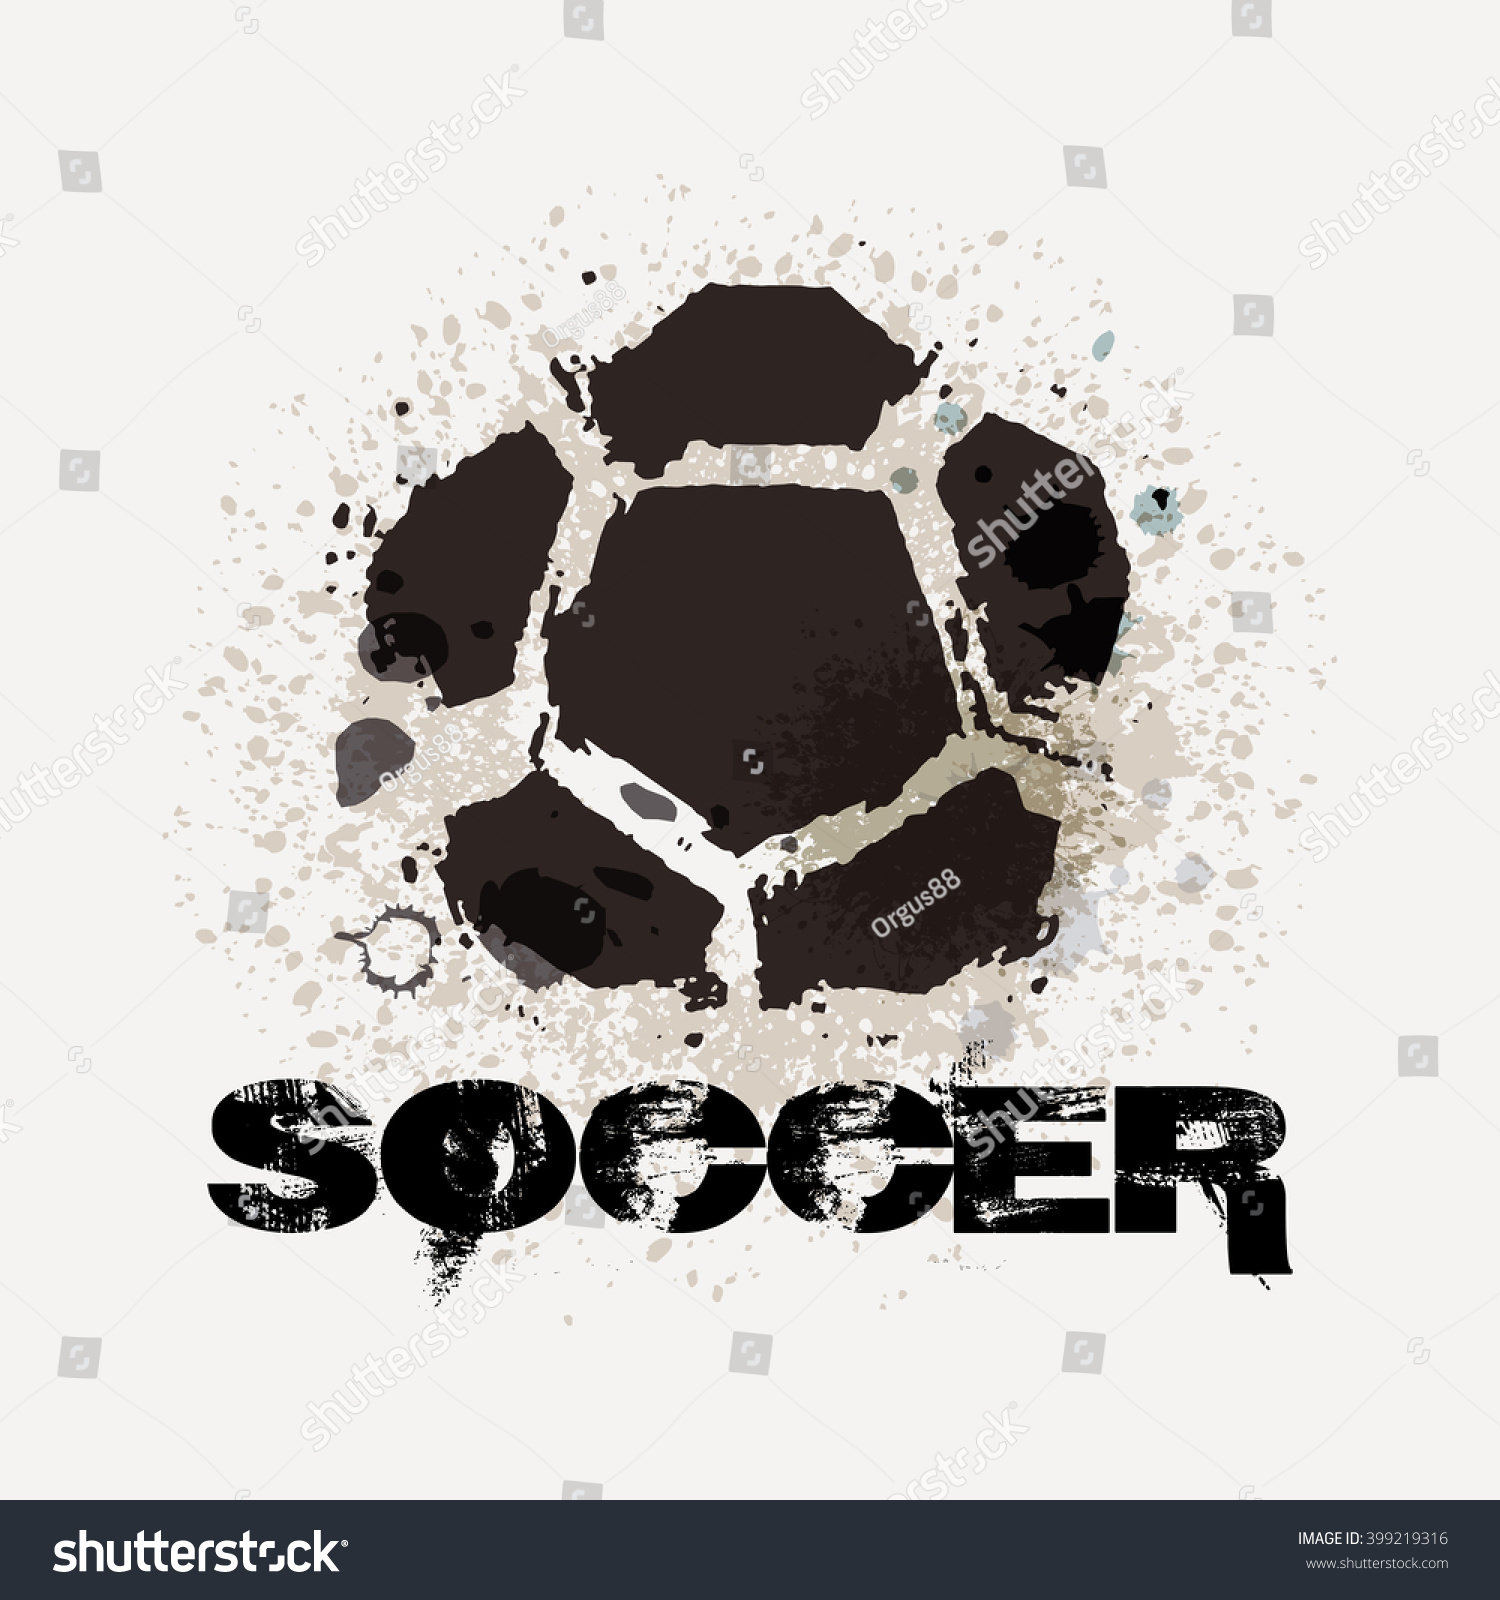 T shirt poster design - Vector Grunge Soccer Design T Shirt Poster Banner Backdrops Design